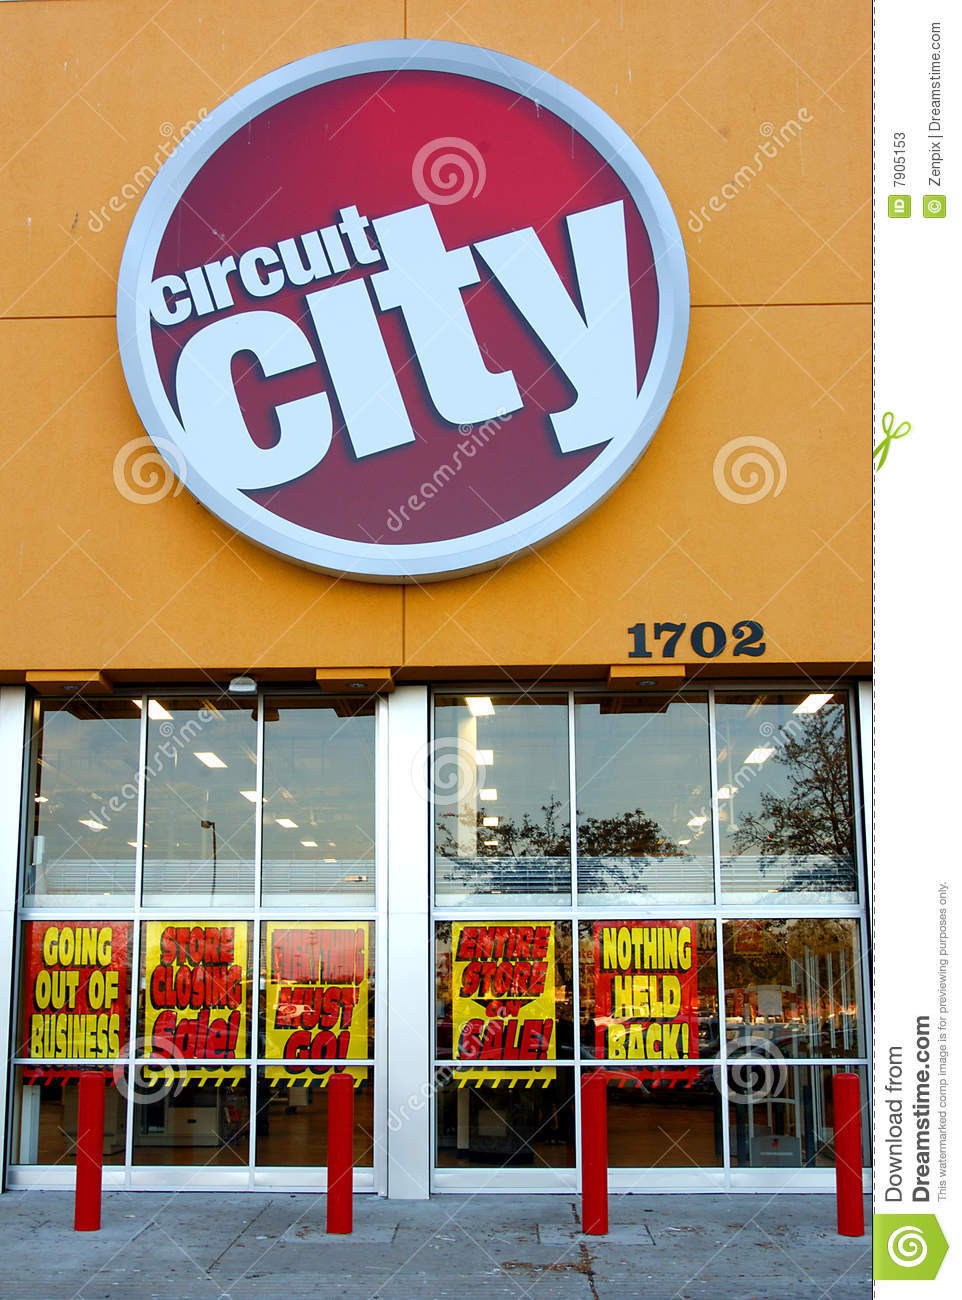 Circuit City Store Front With Signs Announcing Its Going Out Of Business Liquidation Sale